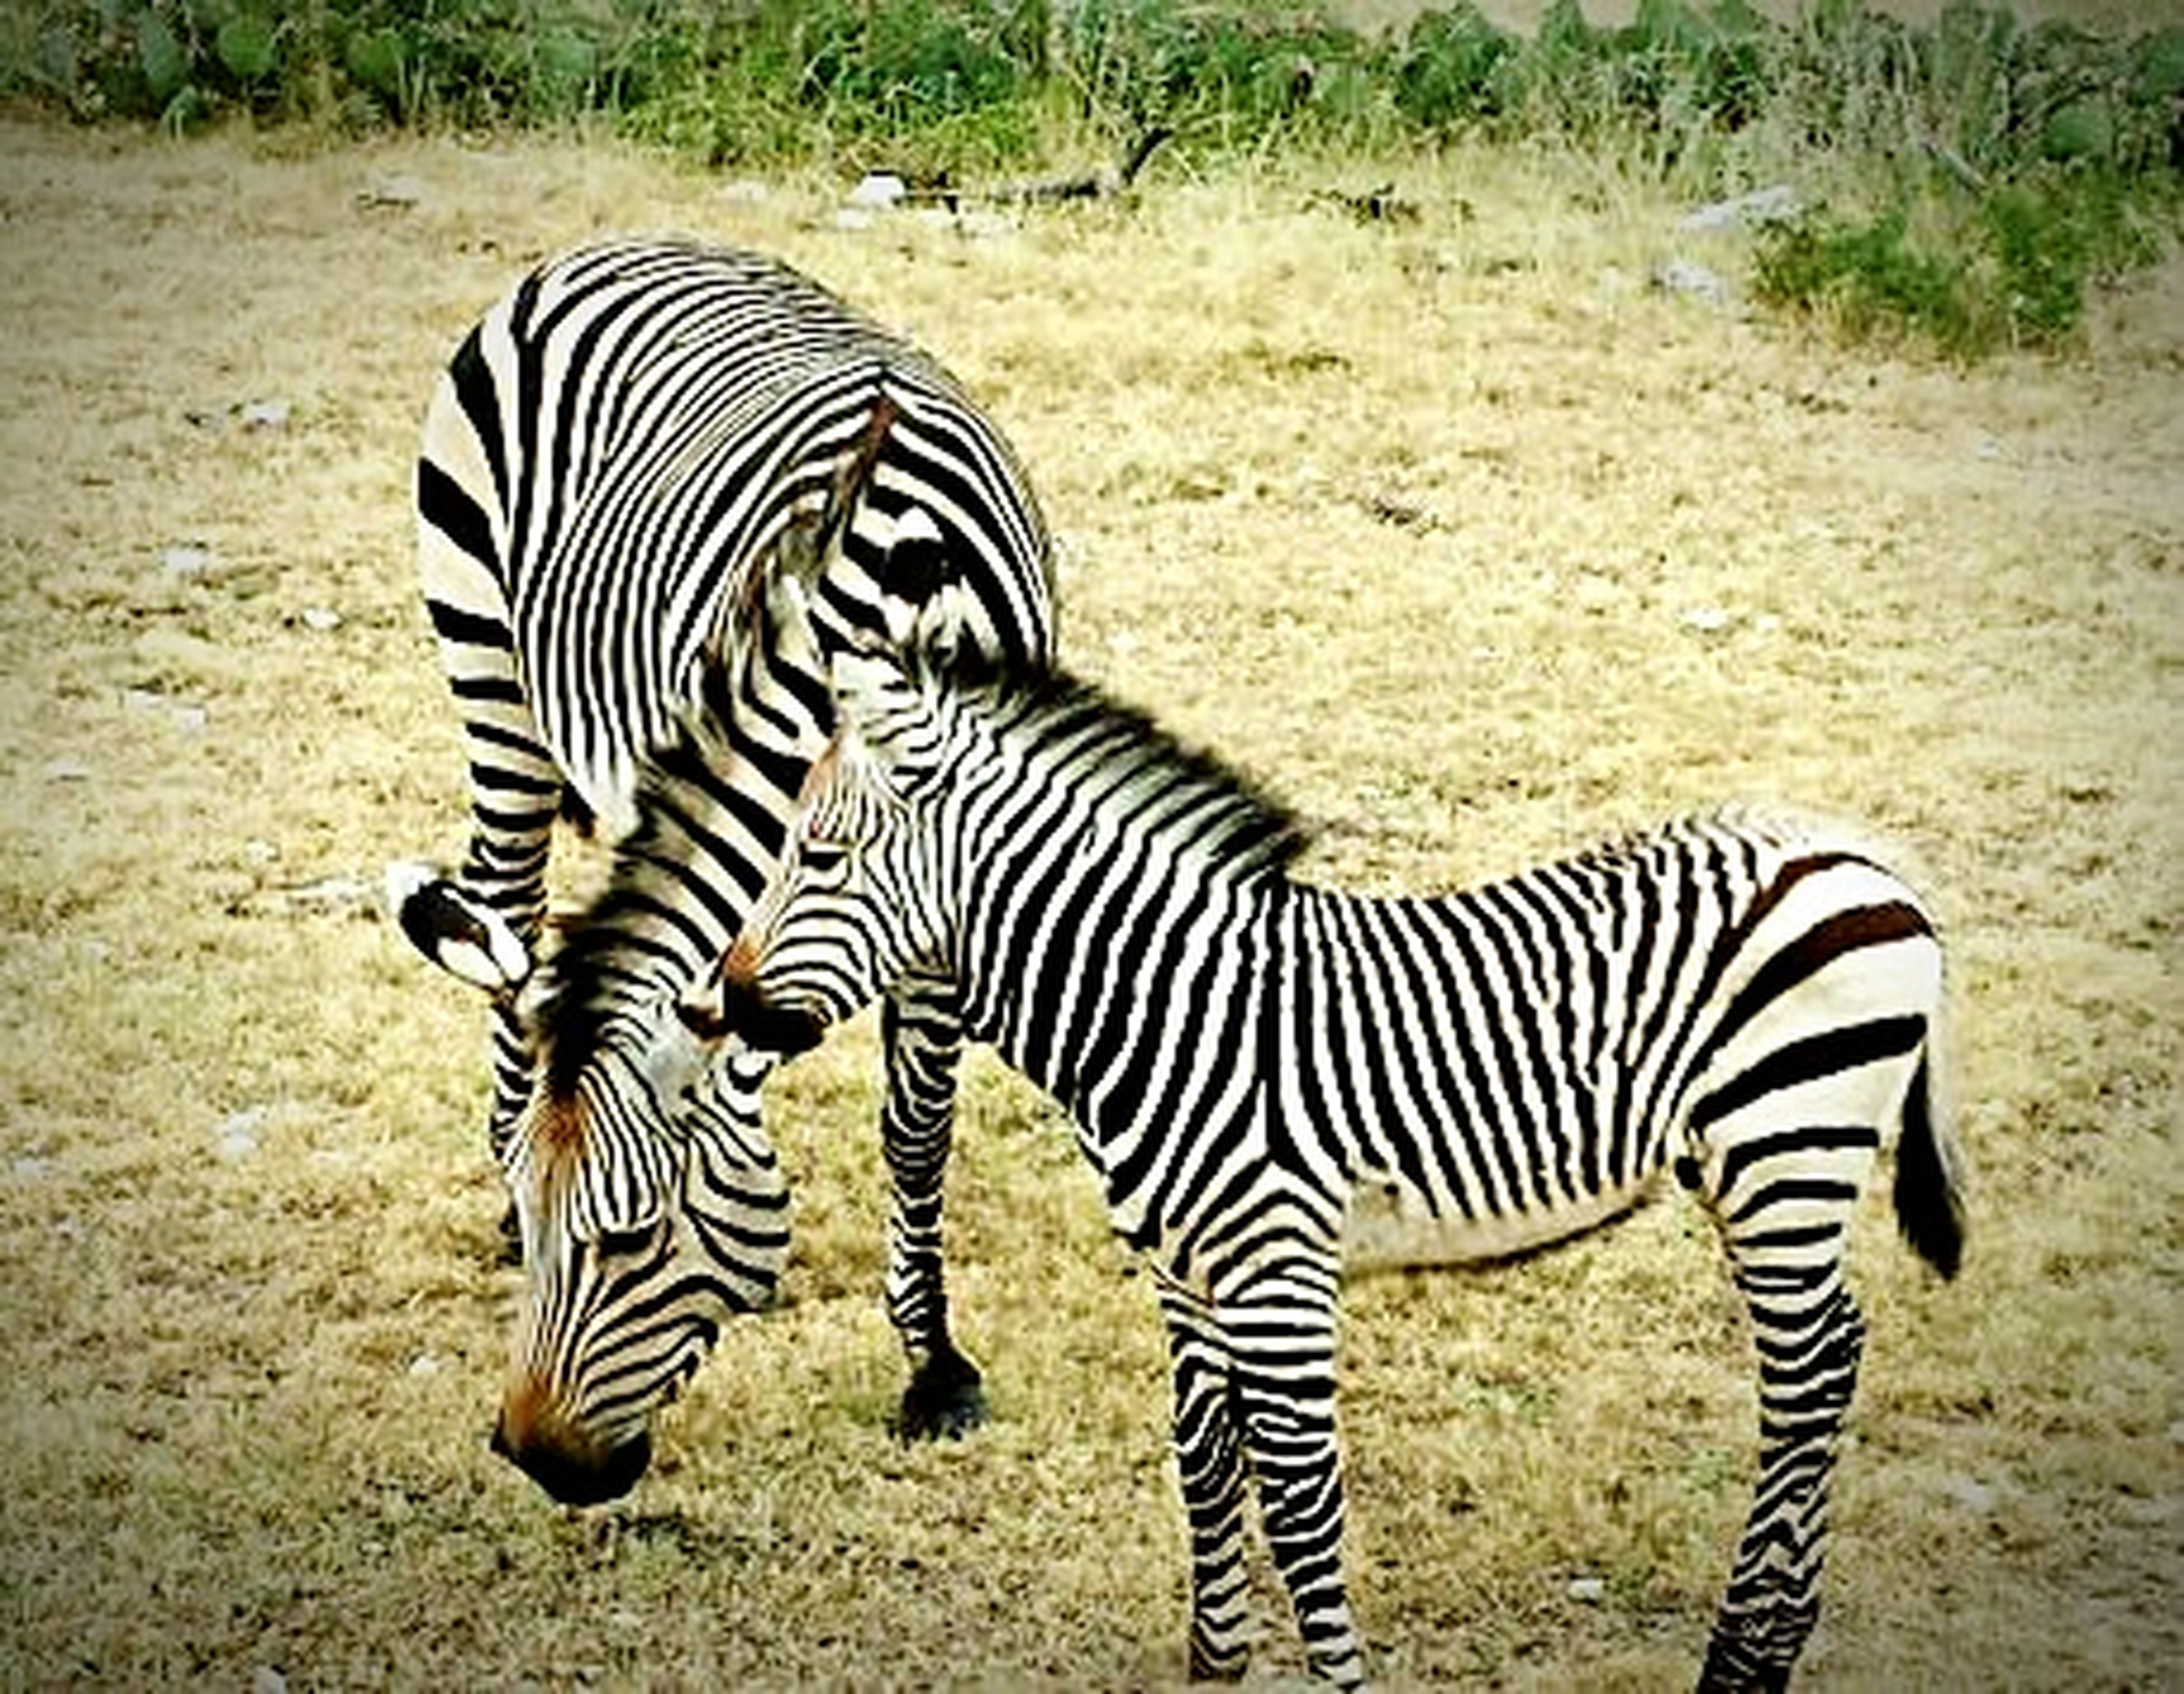 animal themes, zebra, striped, safari animals, animals in the wild, wildlife, field, standing, herbivorous, mammal, animal markings, natural pattern, two animals, grass, togetherness, grazing, full length, landscape, nature, side view